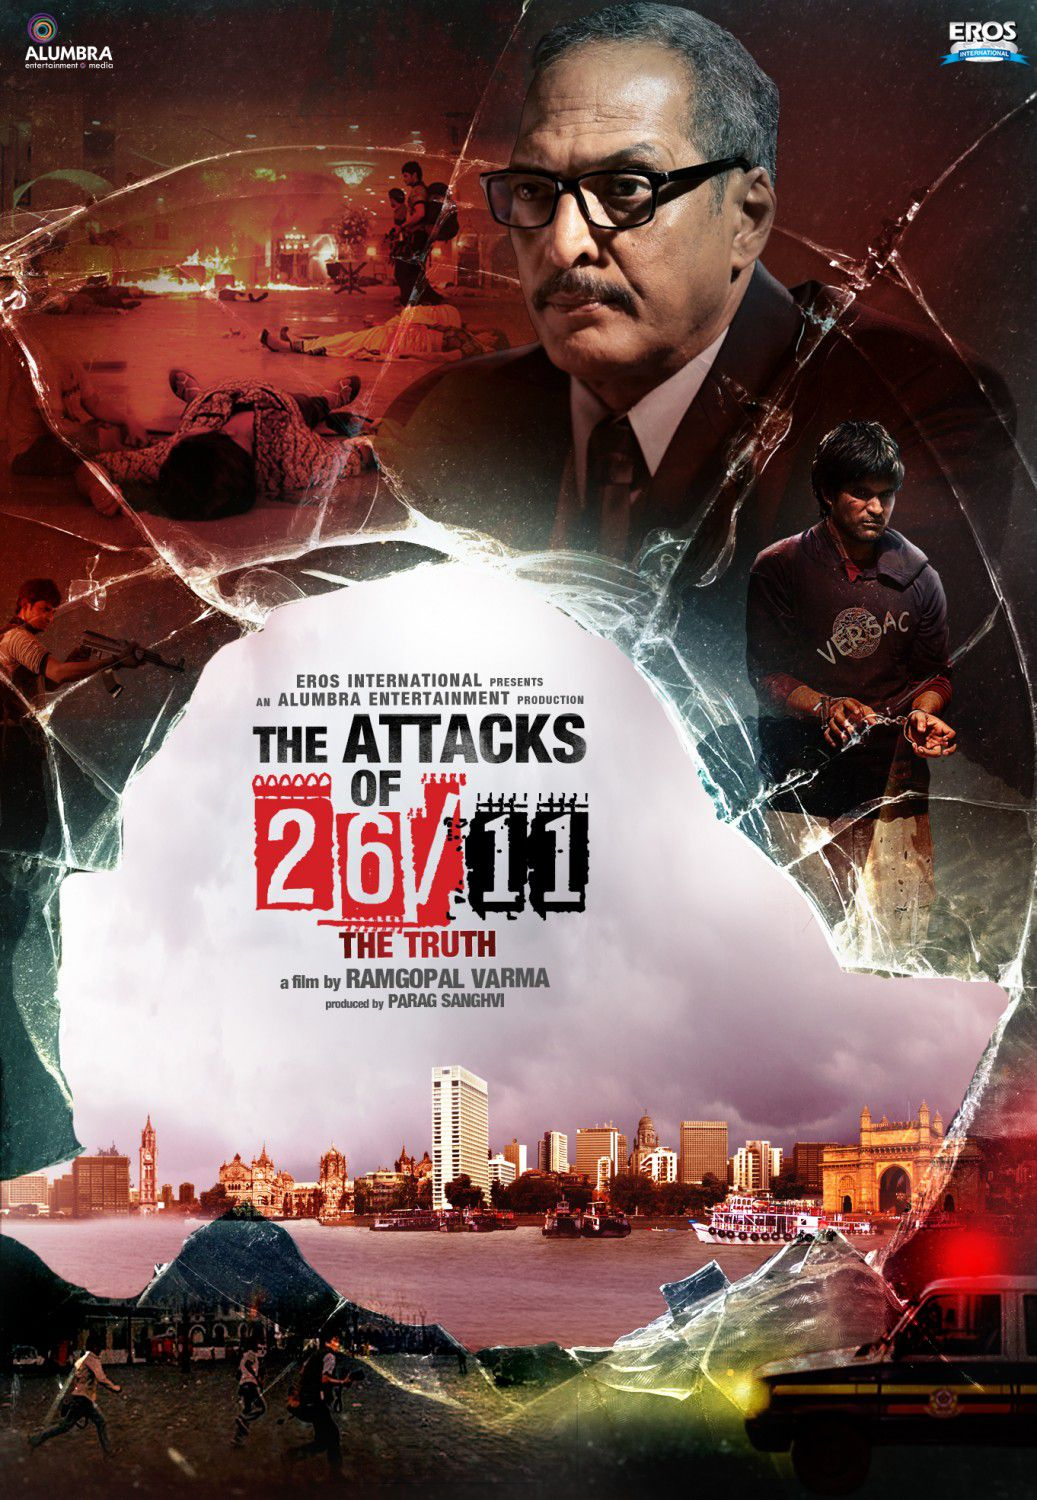 The Attacks of 26/11 - film poster